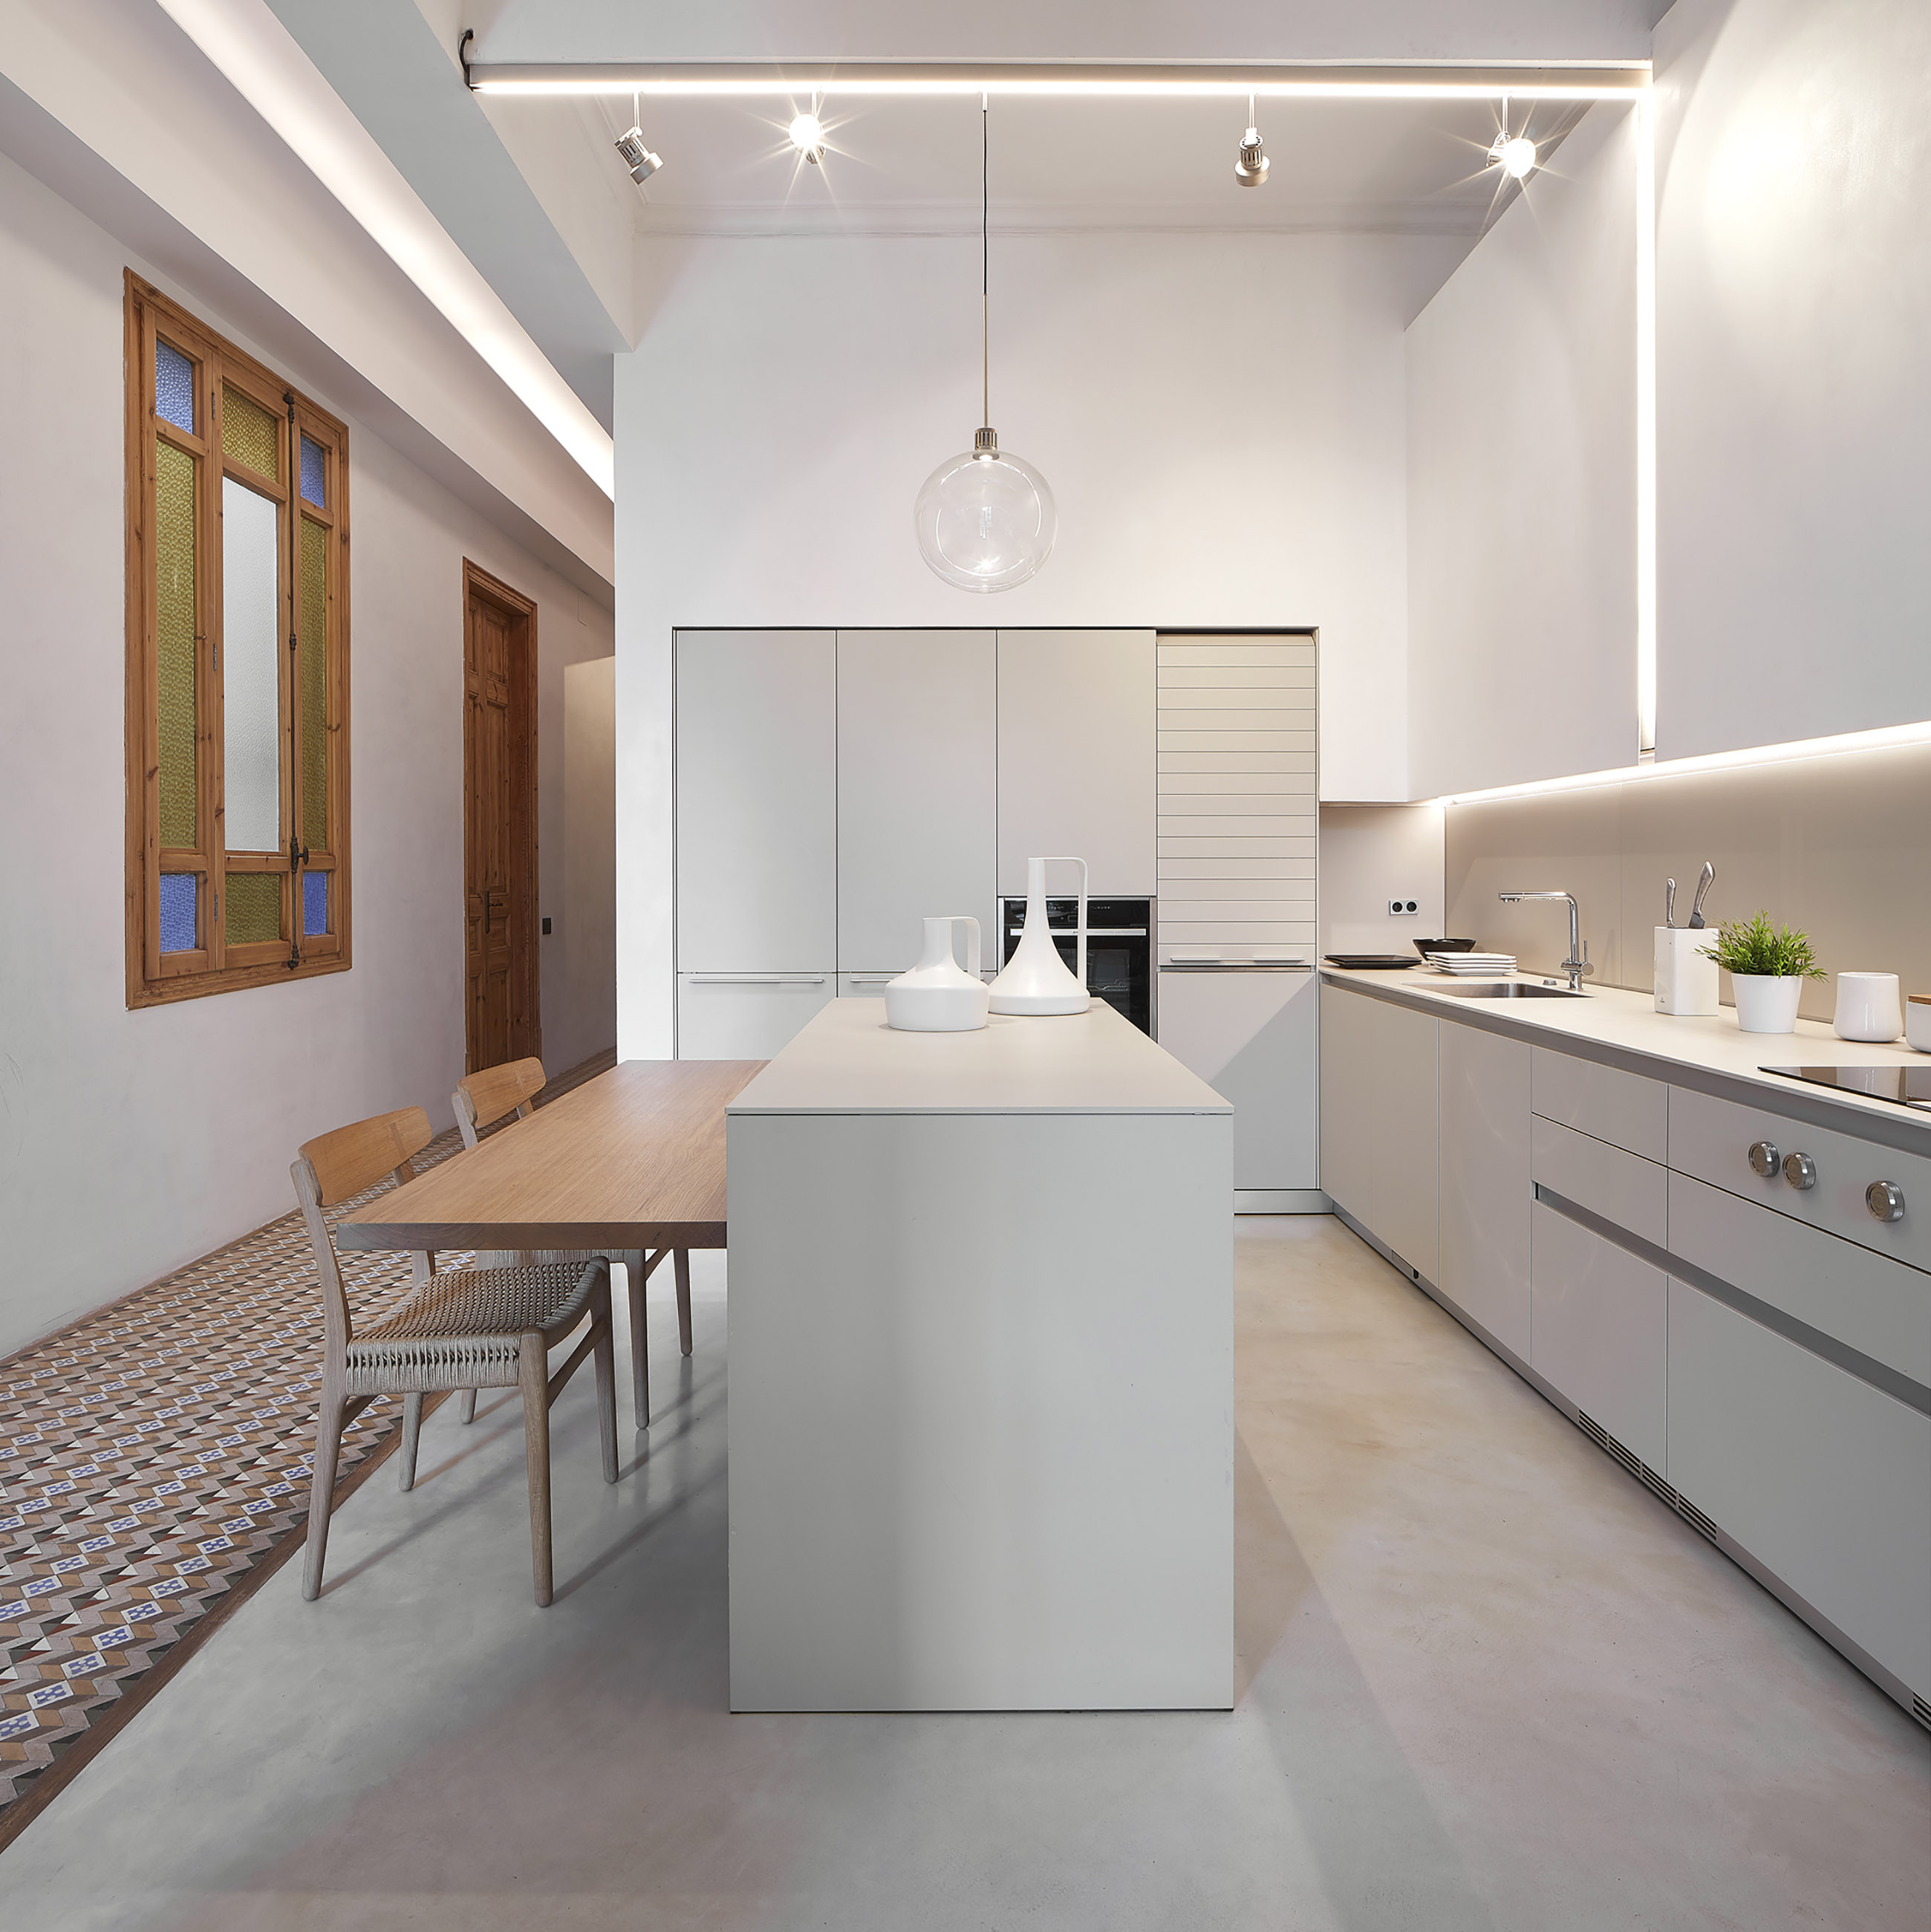 Bulthaup b3 kitchen, white.